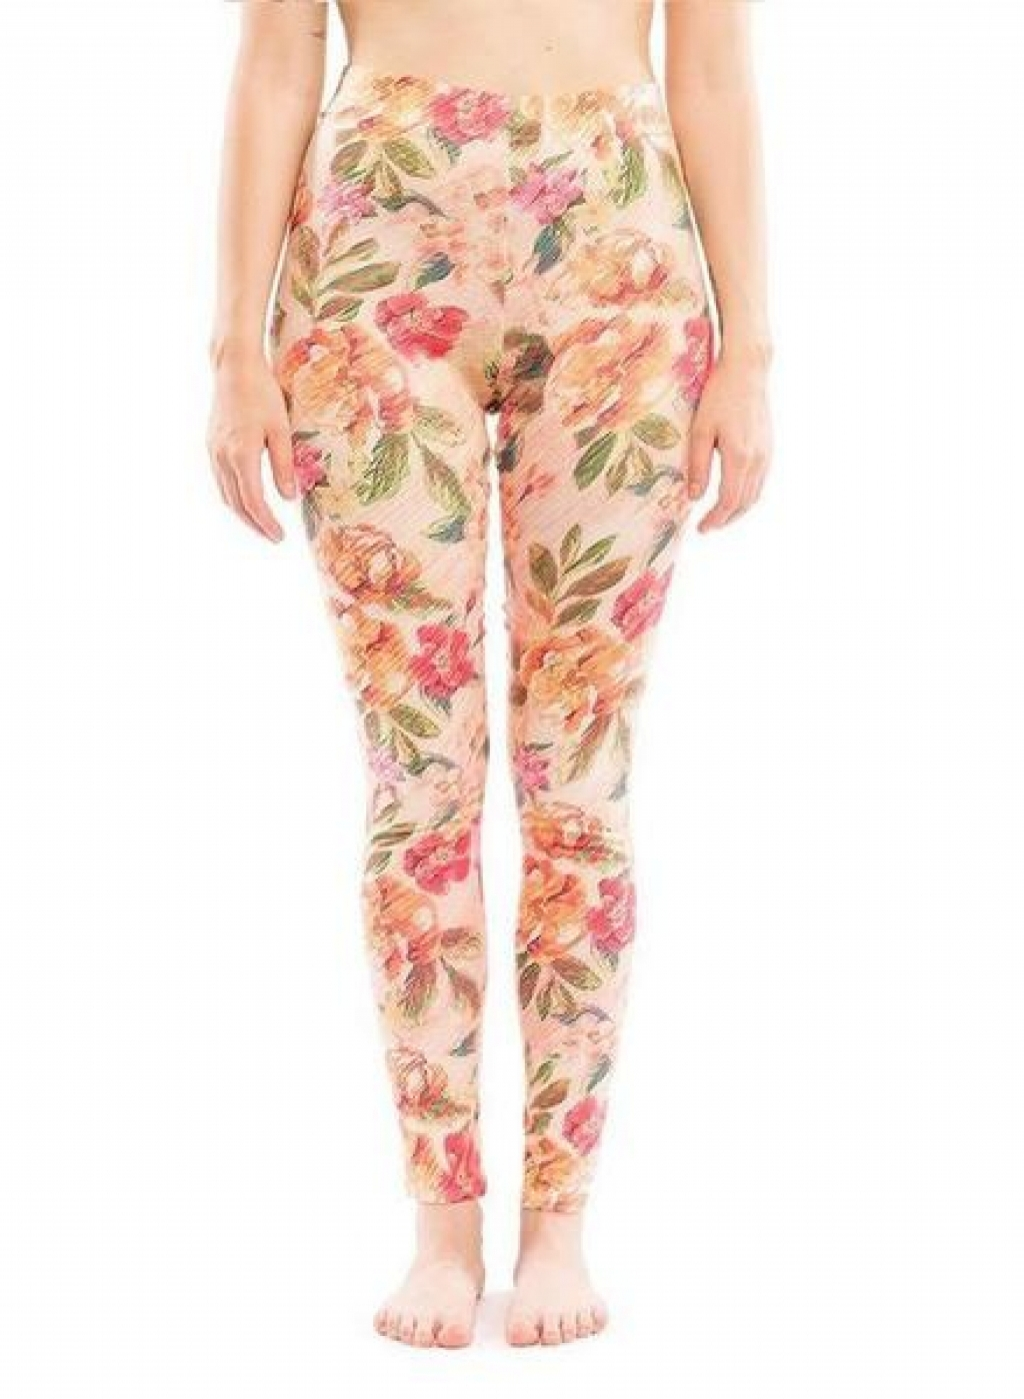 15429841650_liz-m-leggings-flower-painting-leggings-3809156726872_grande.jpg